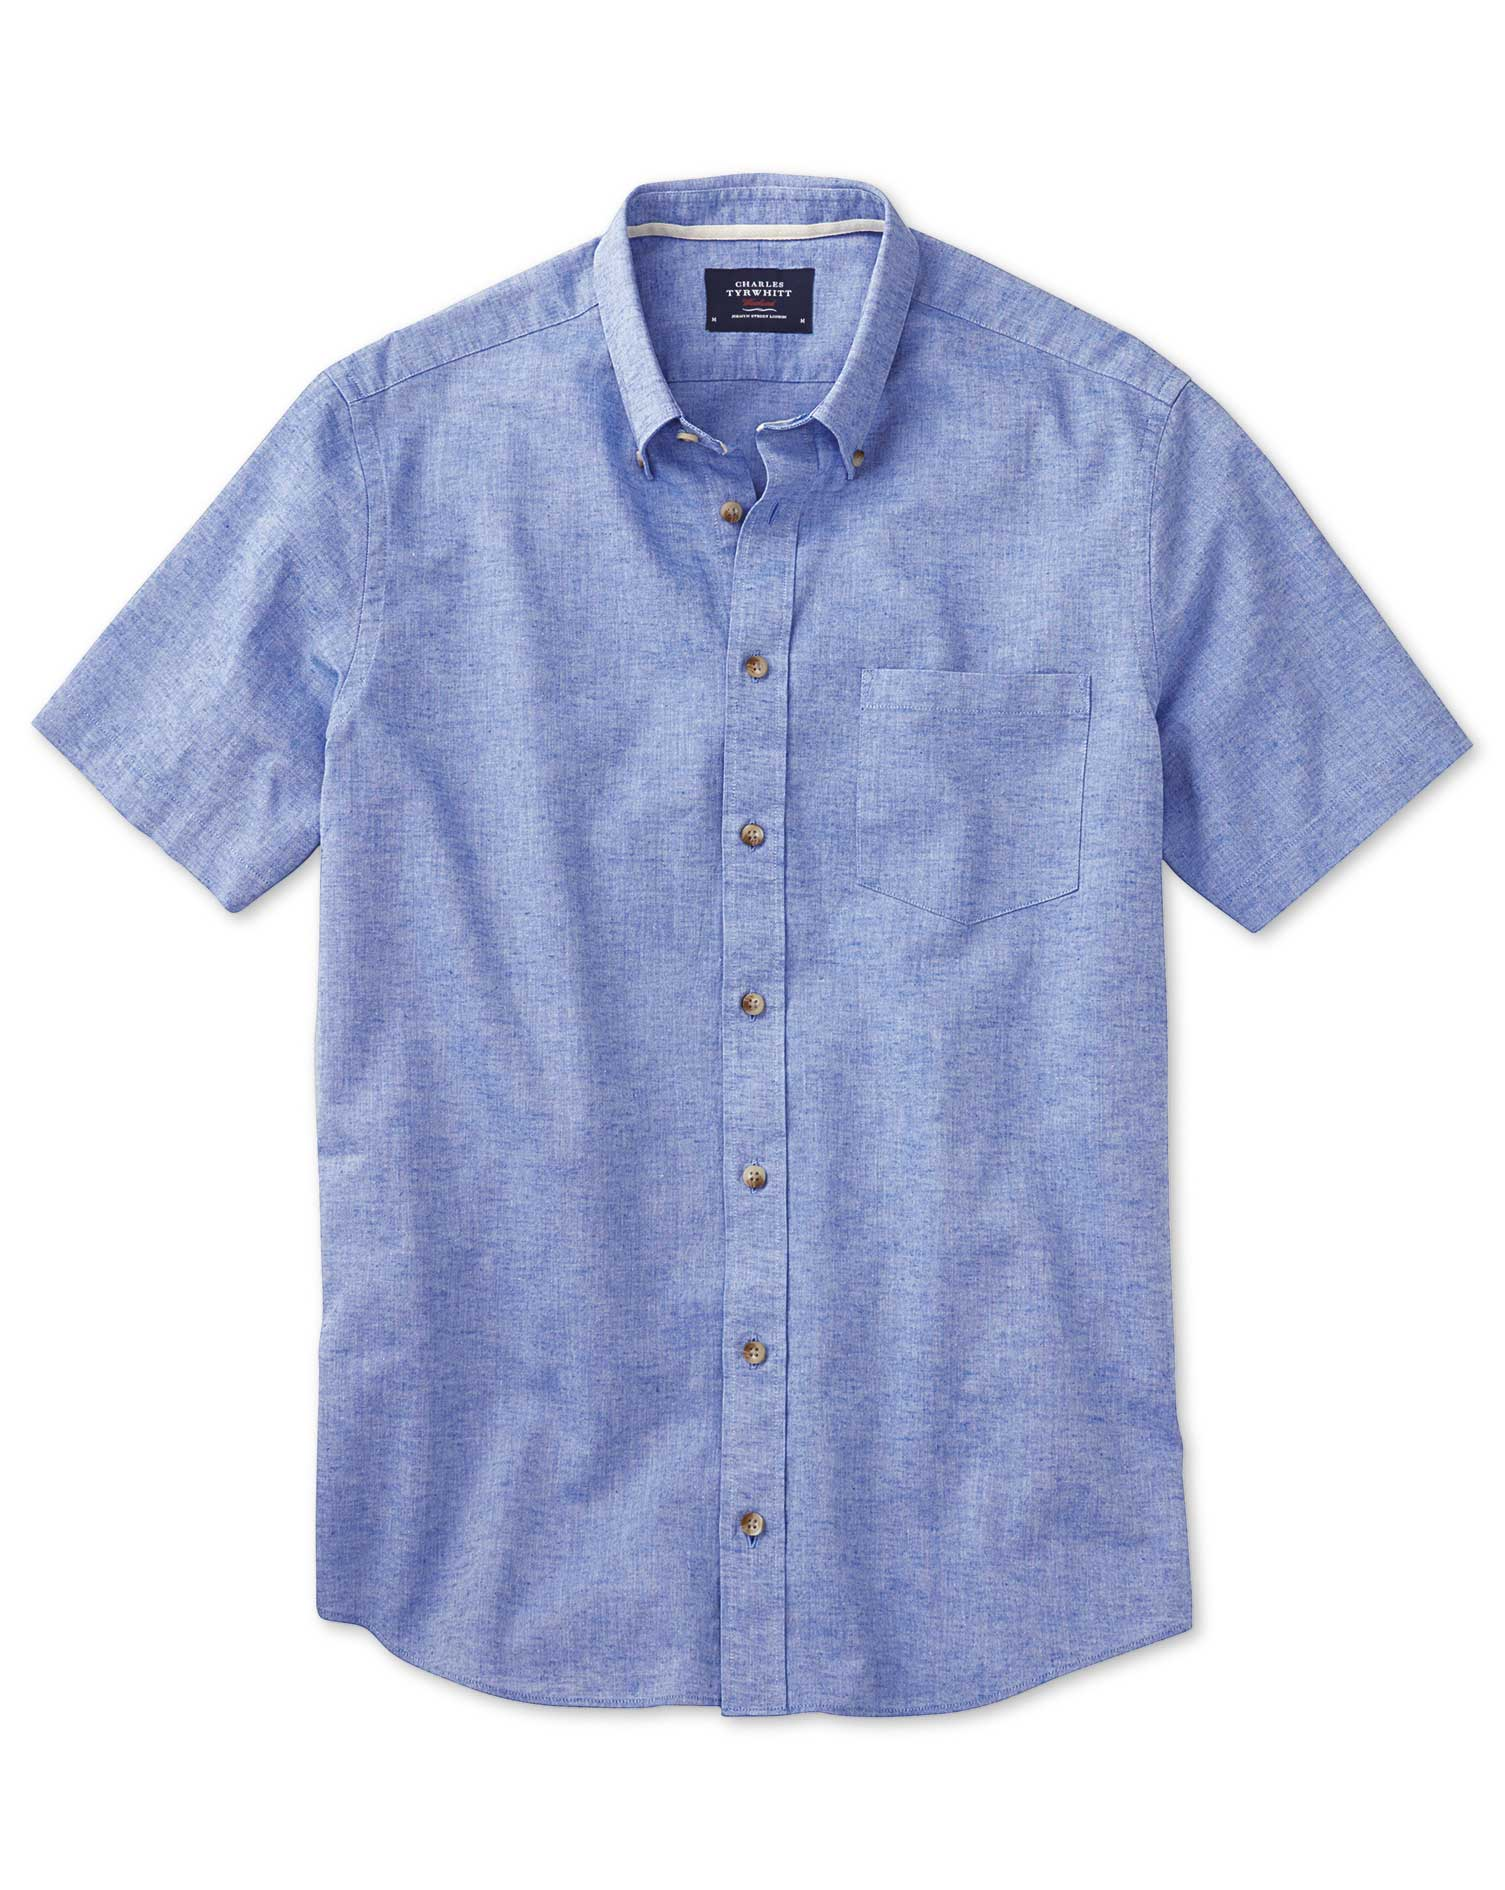 Classic Fit Short Sleeve Mid Blue Shirt Single Cuff Size Small by Charles Tyrwhitt